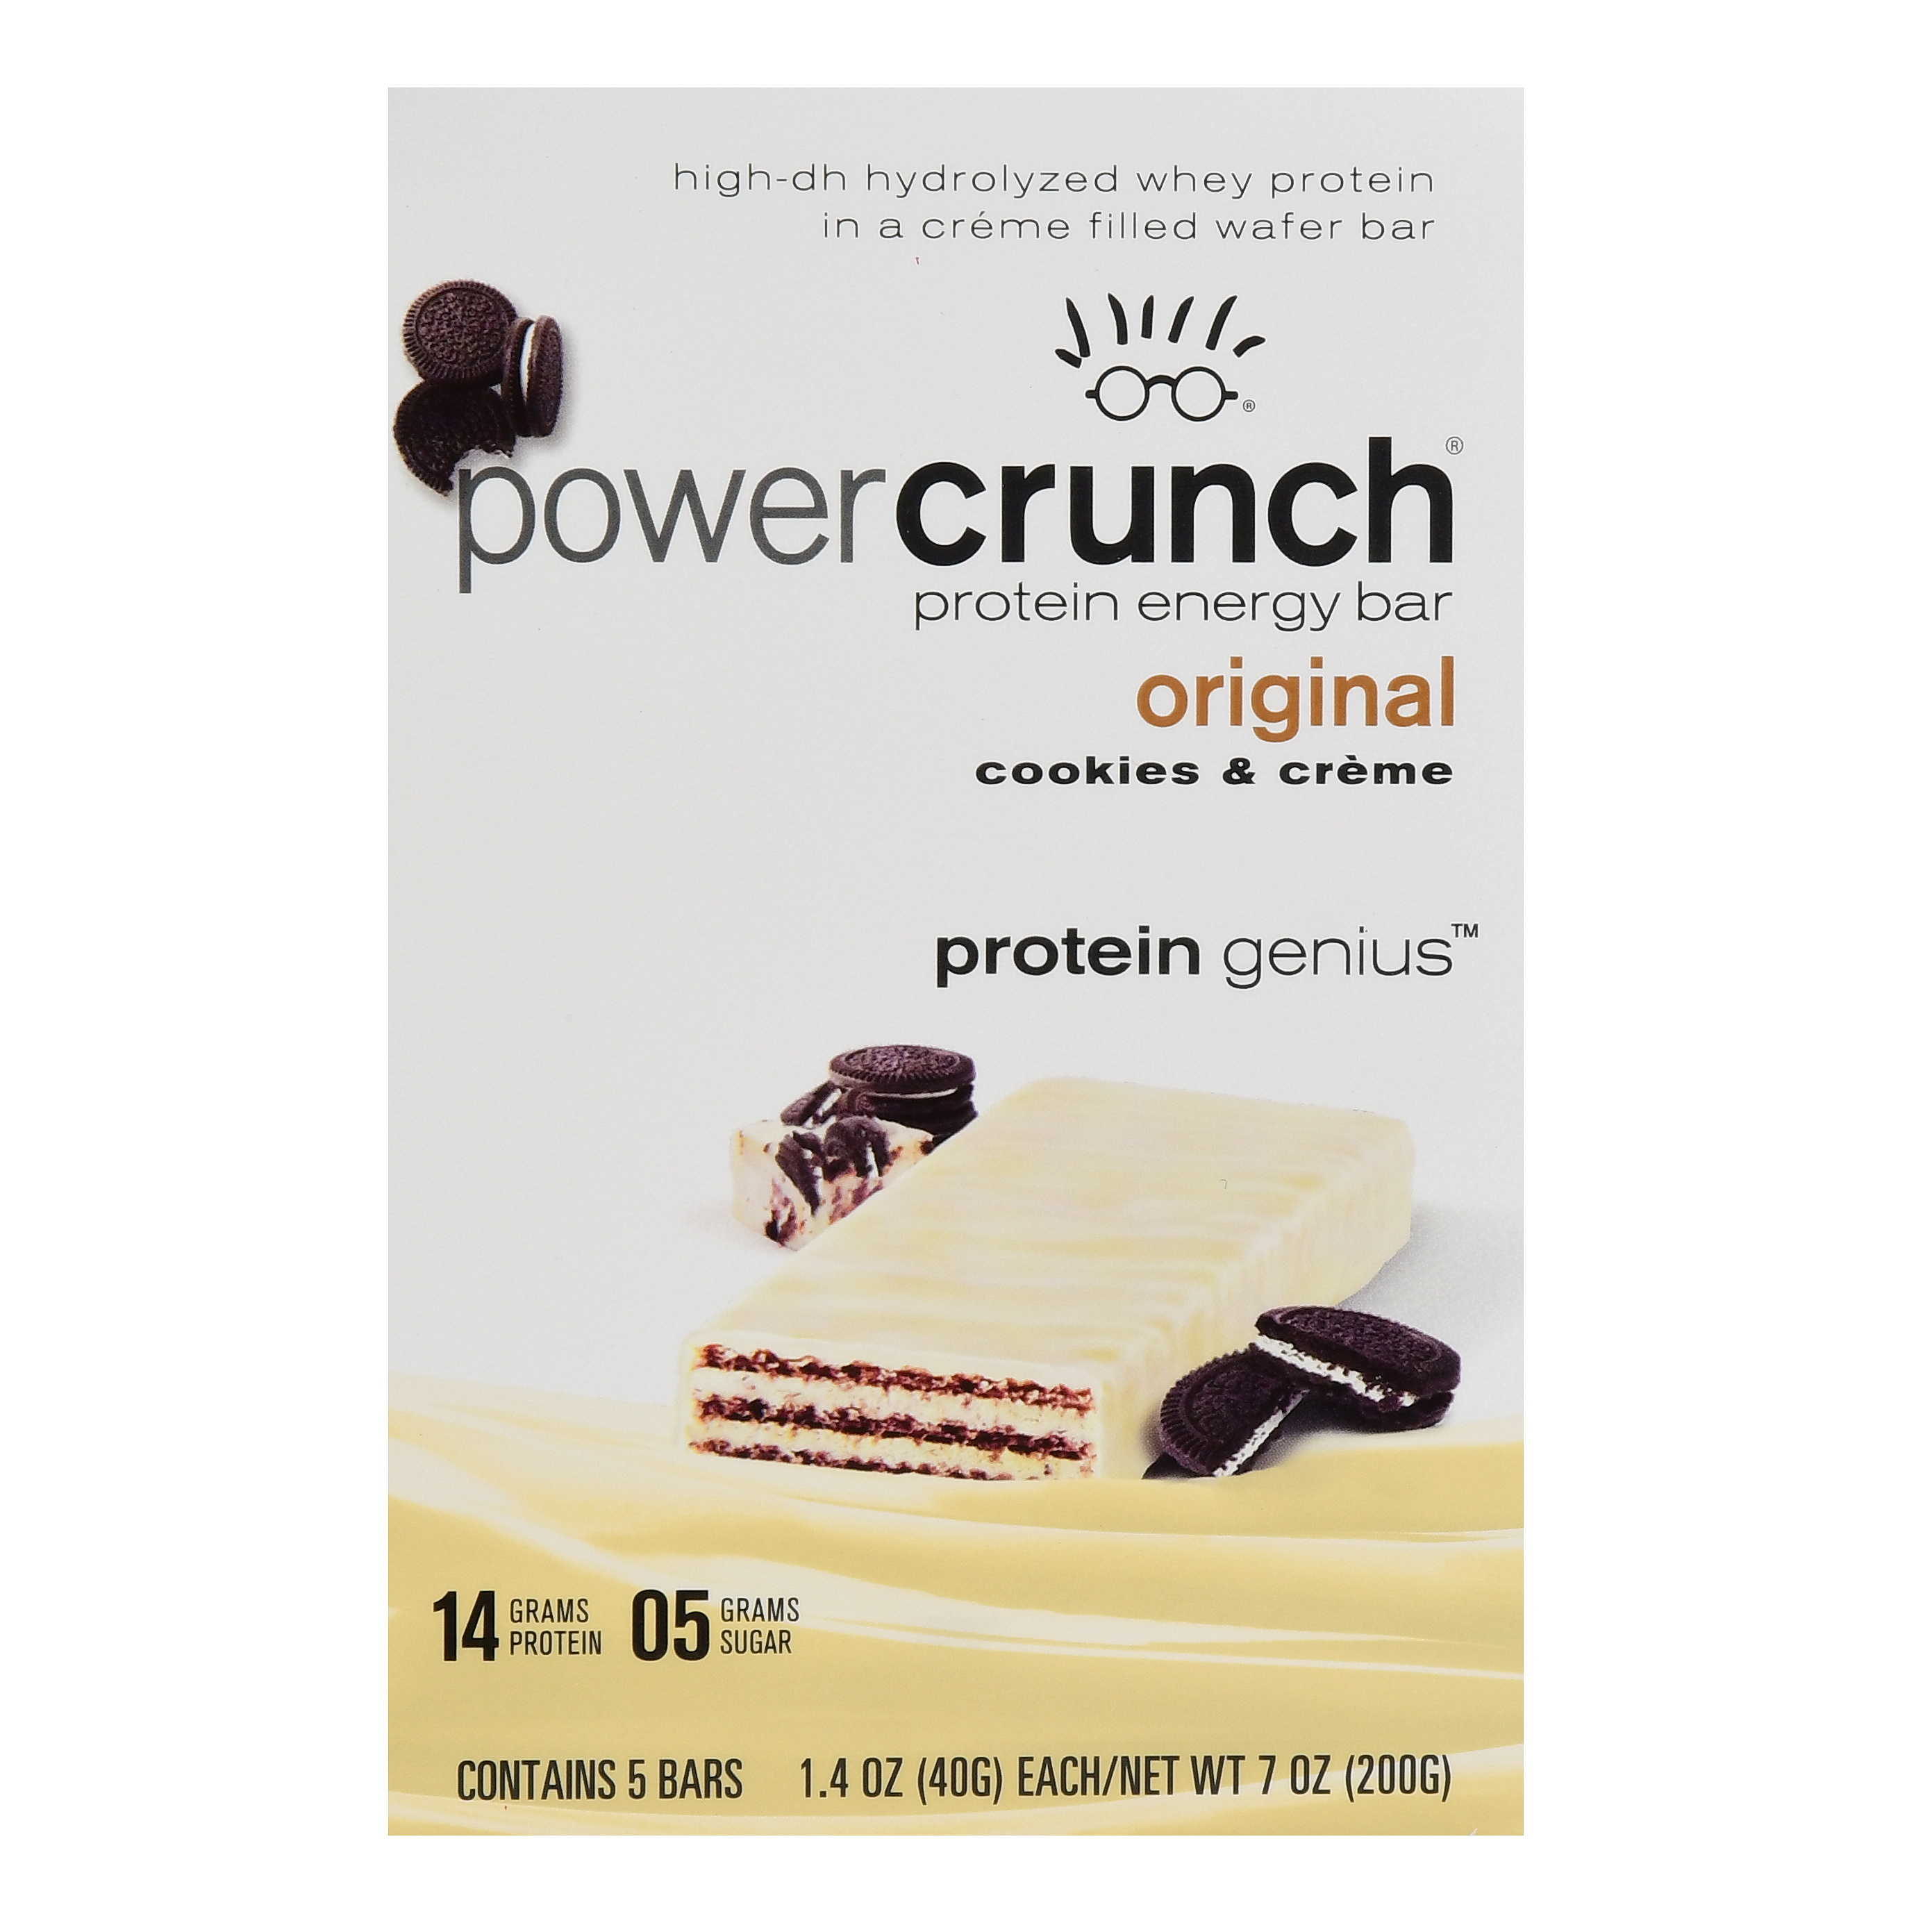 Power Crunch Bar, 14 Grams of Protein, Cookies & Crème, 1.4 oz, 5 Ct